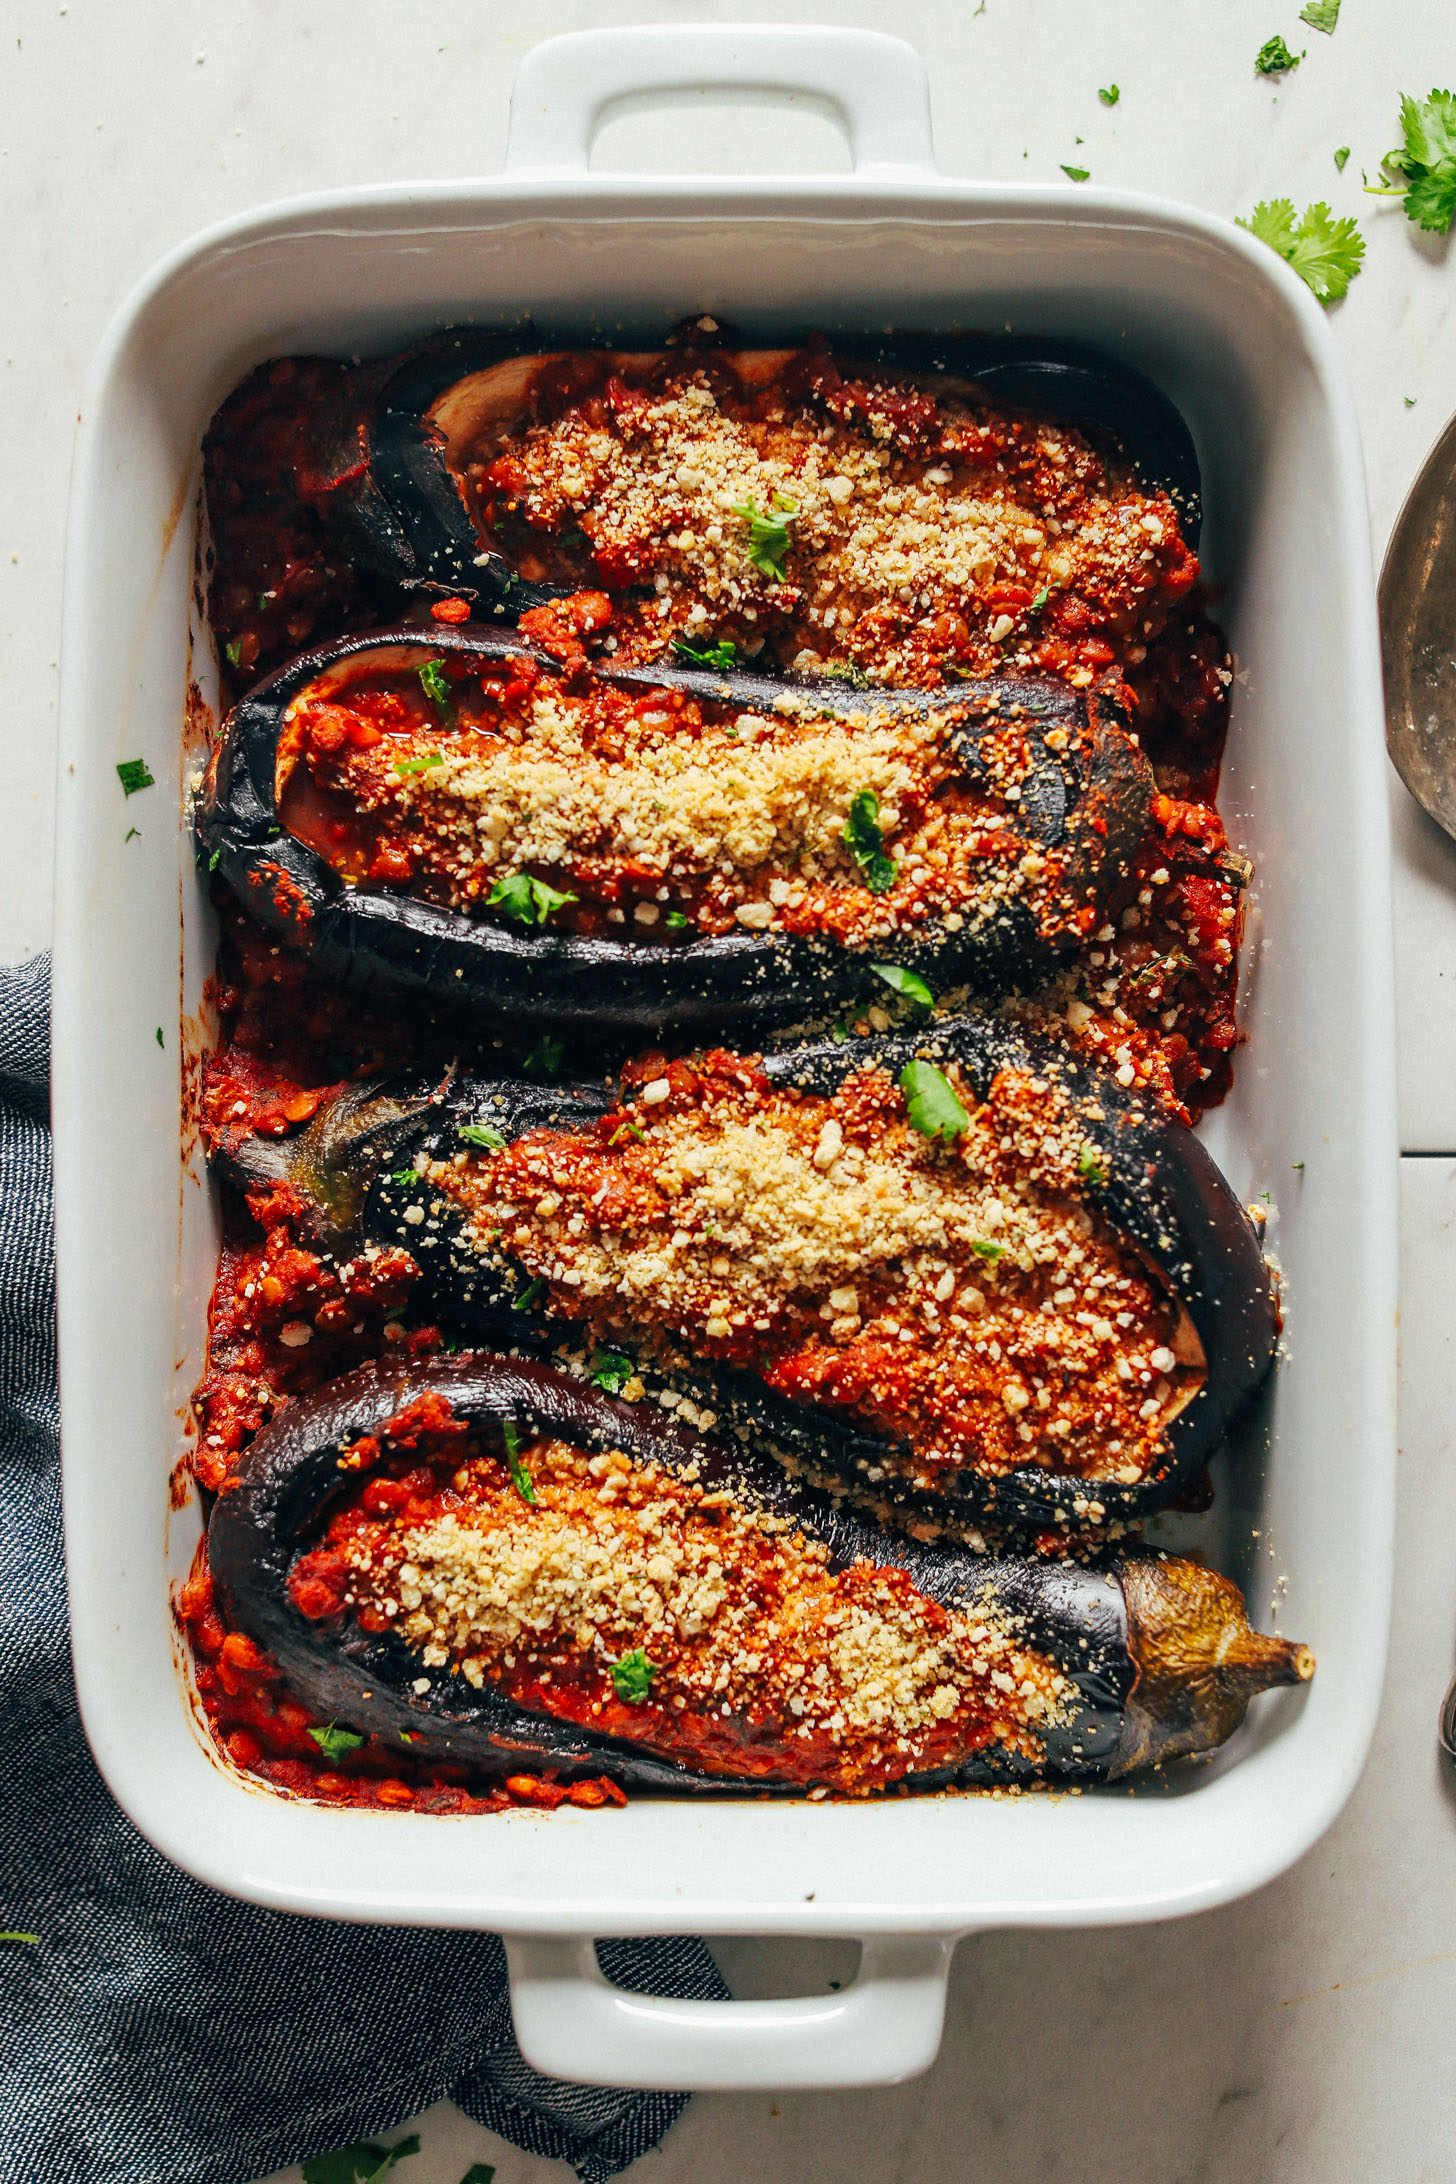 Ceramic baking dish with Moroccan Lentil-Stuffed Eggplant for a healthy plant-based meal